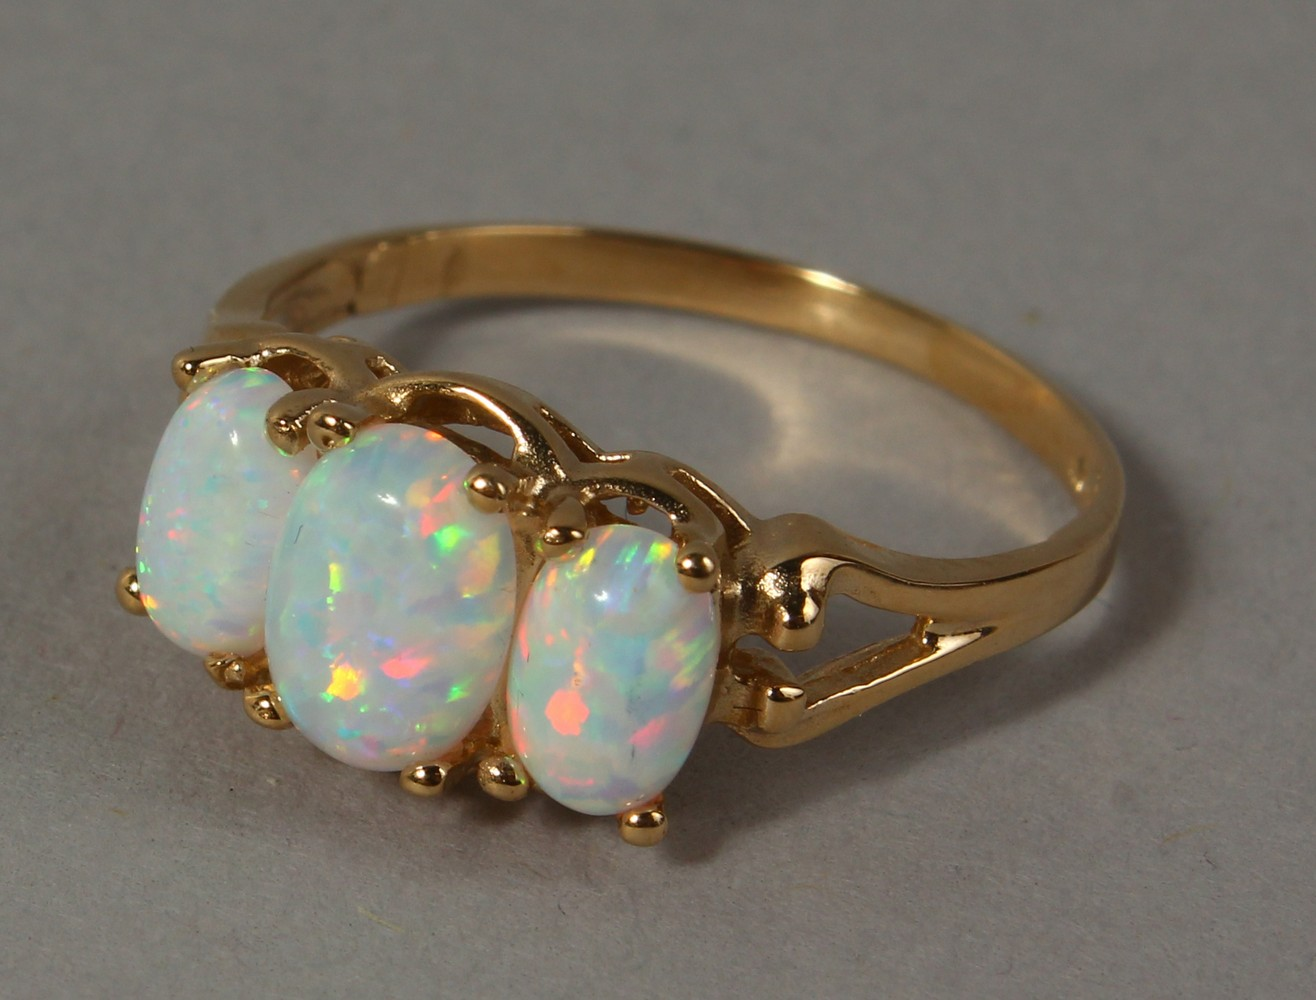 Lot 1765 - A 9CT GOLD THREE STONE OPAL RING.